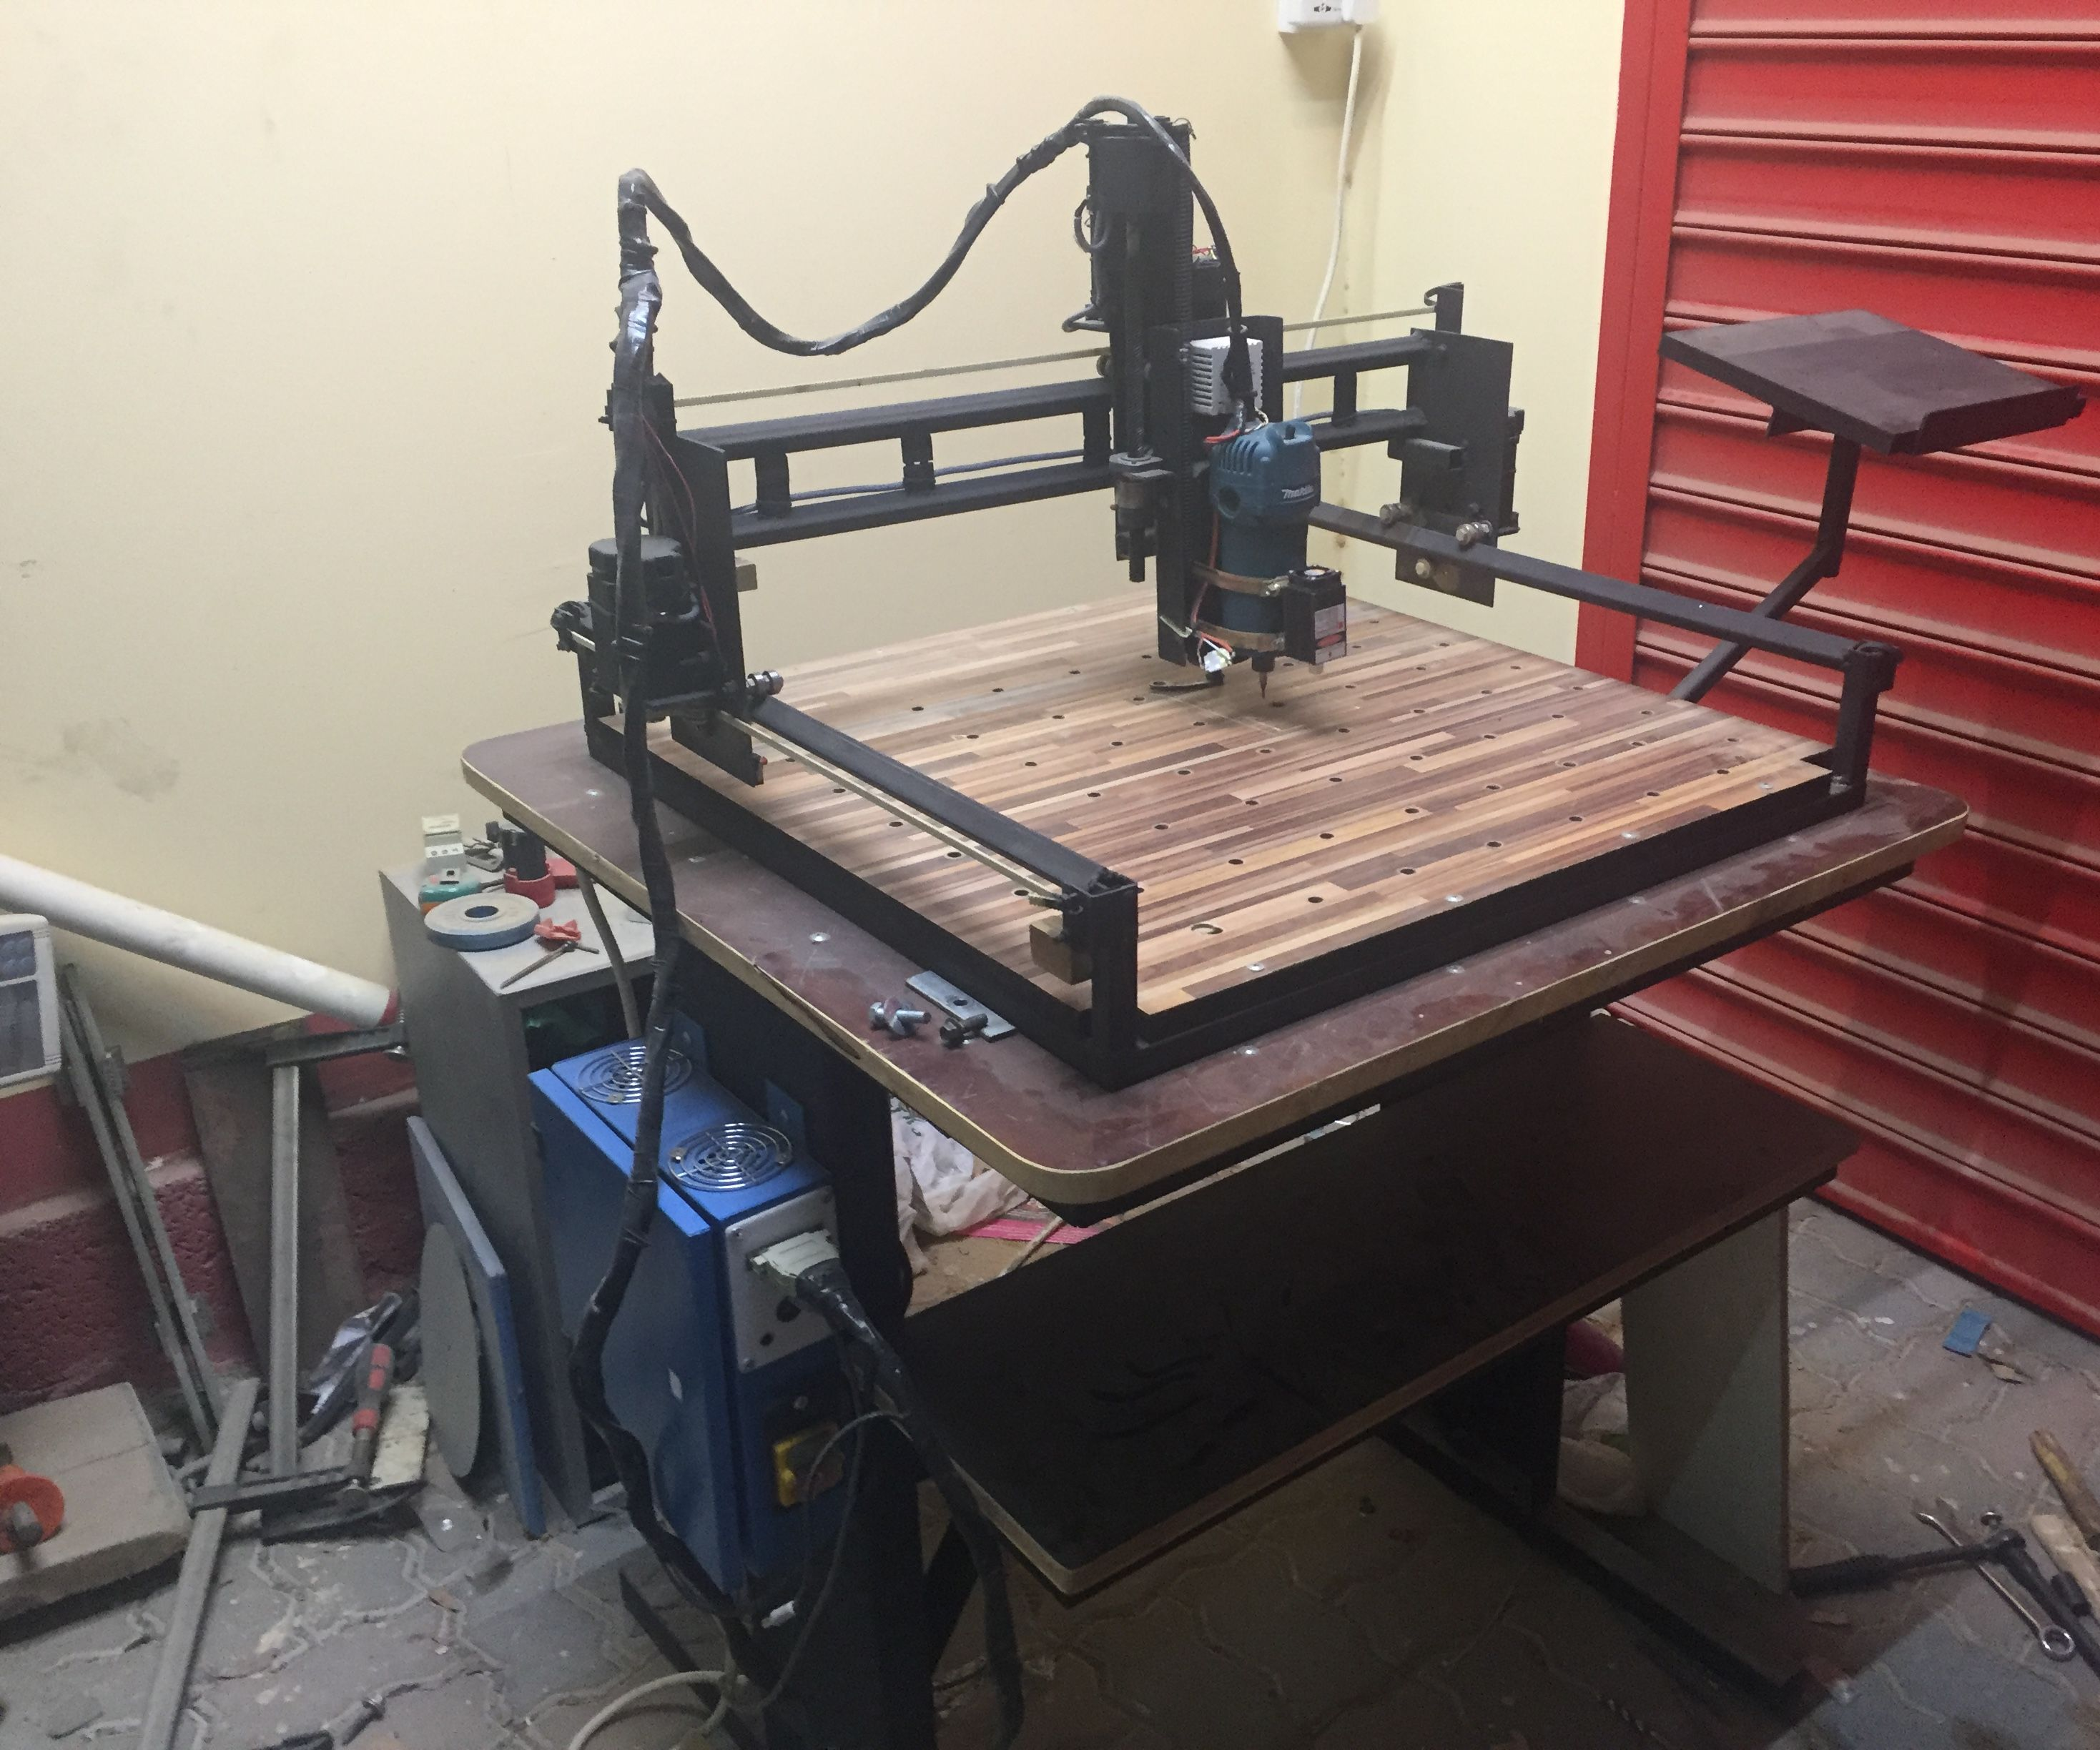 DIY X-Carve build   3 Axis CNC Machine with laser engraving